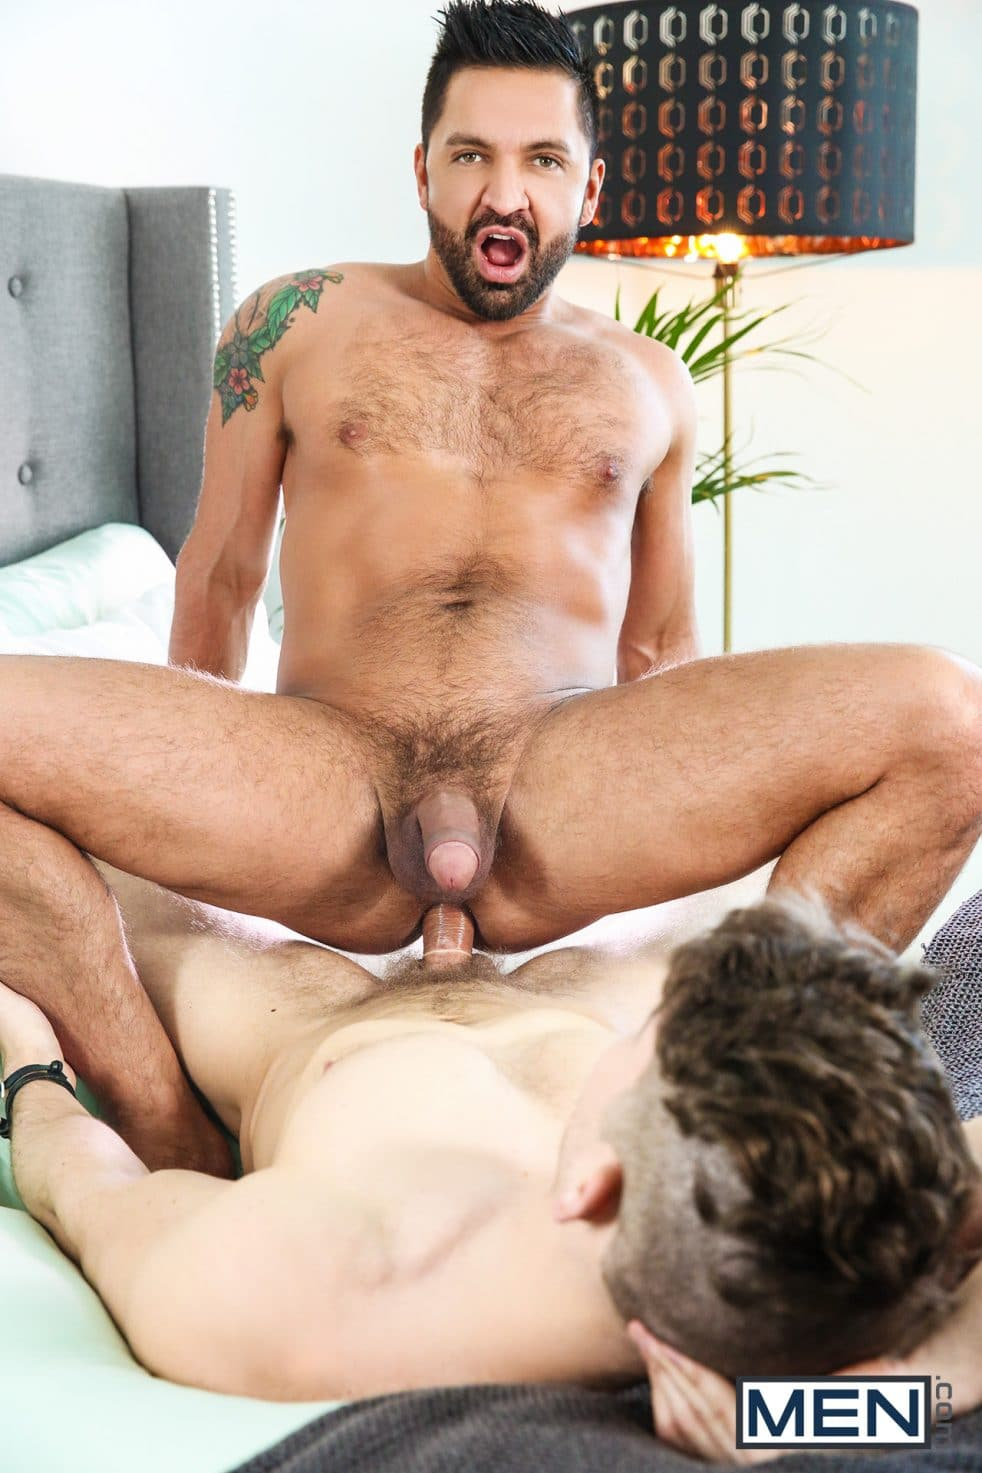 Anal Gay Sex